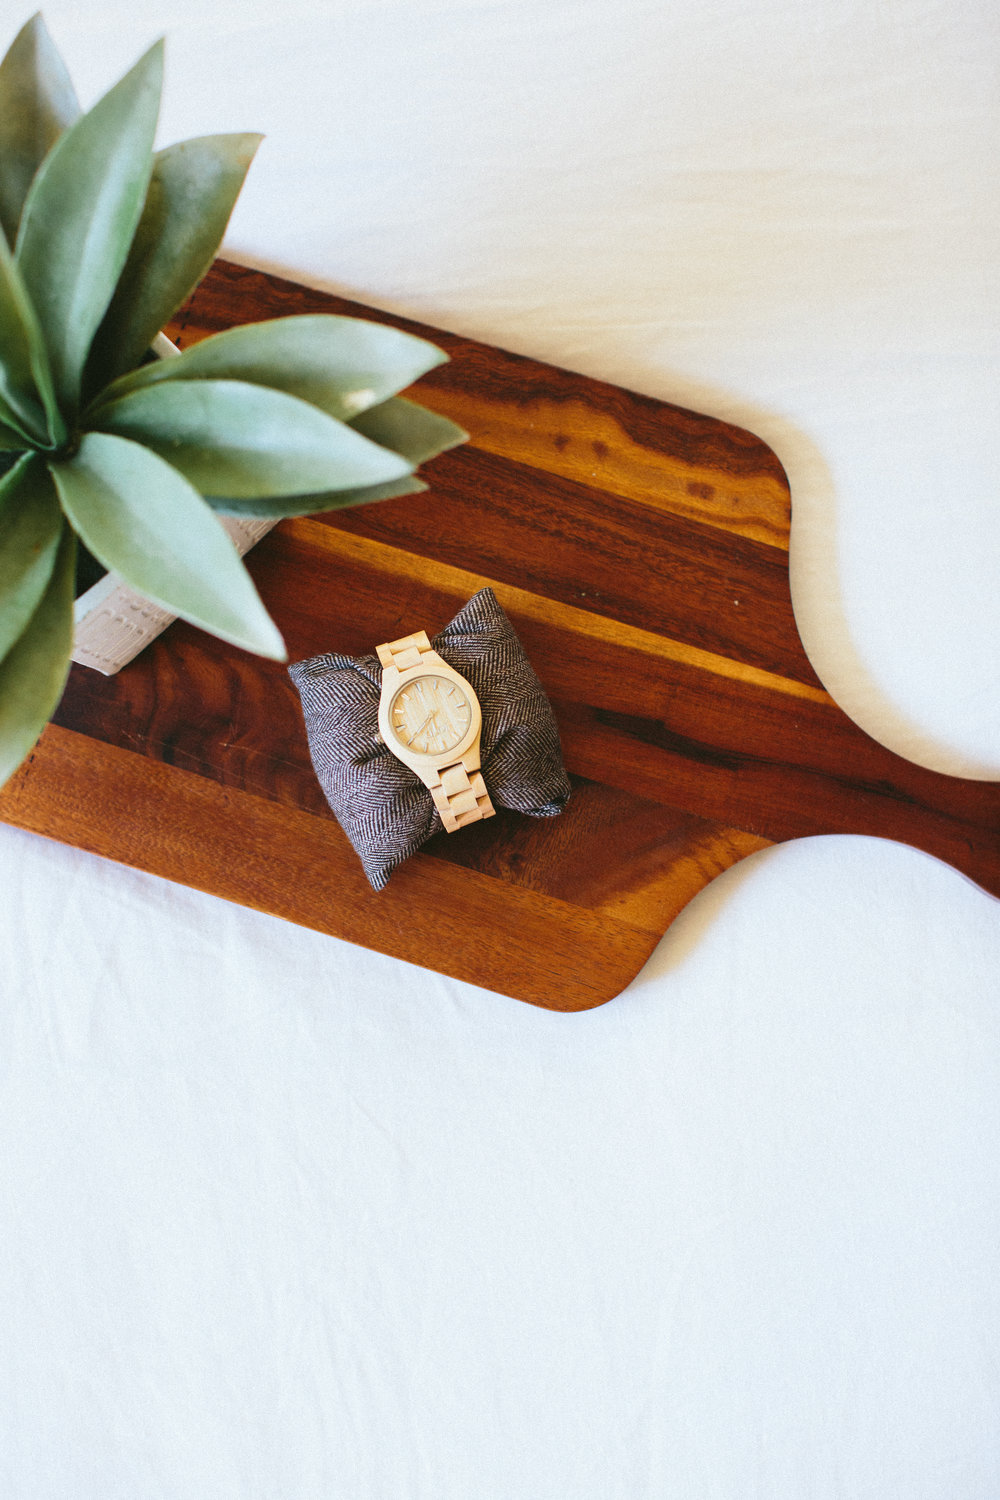 JORD-Wood-Watches-Dulcet-Creative-3